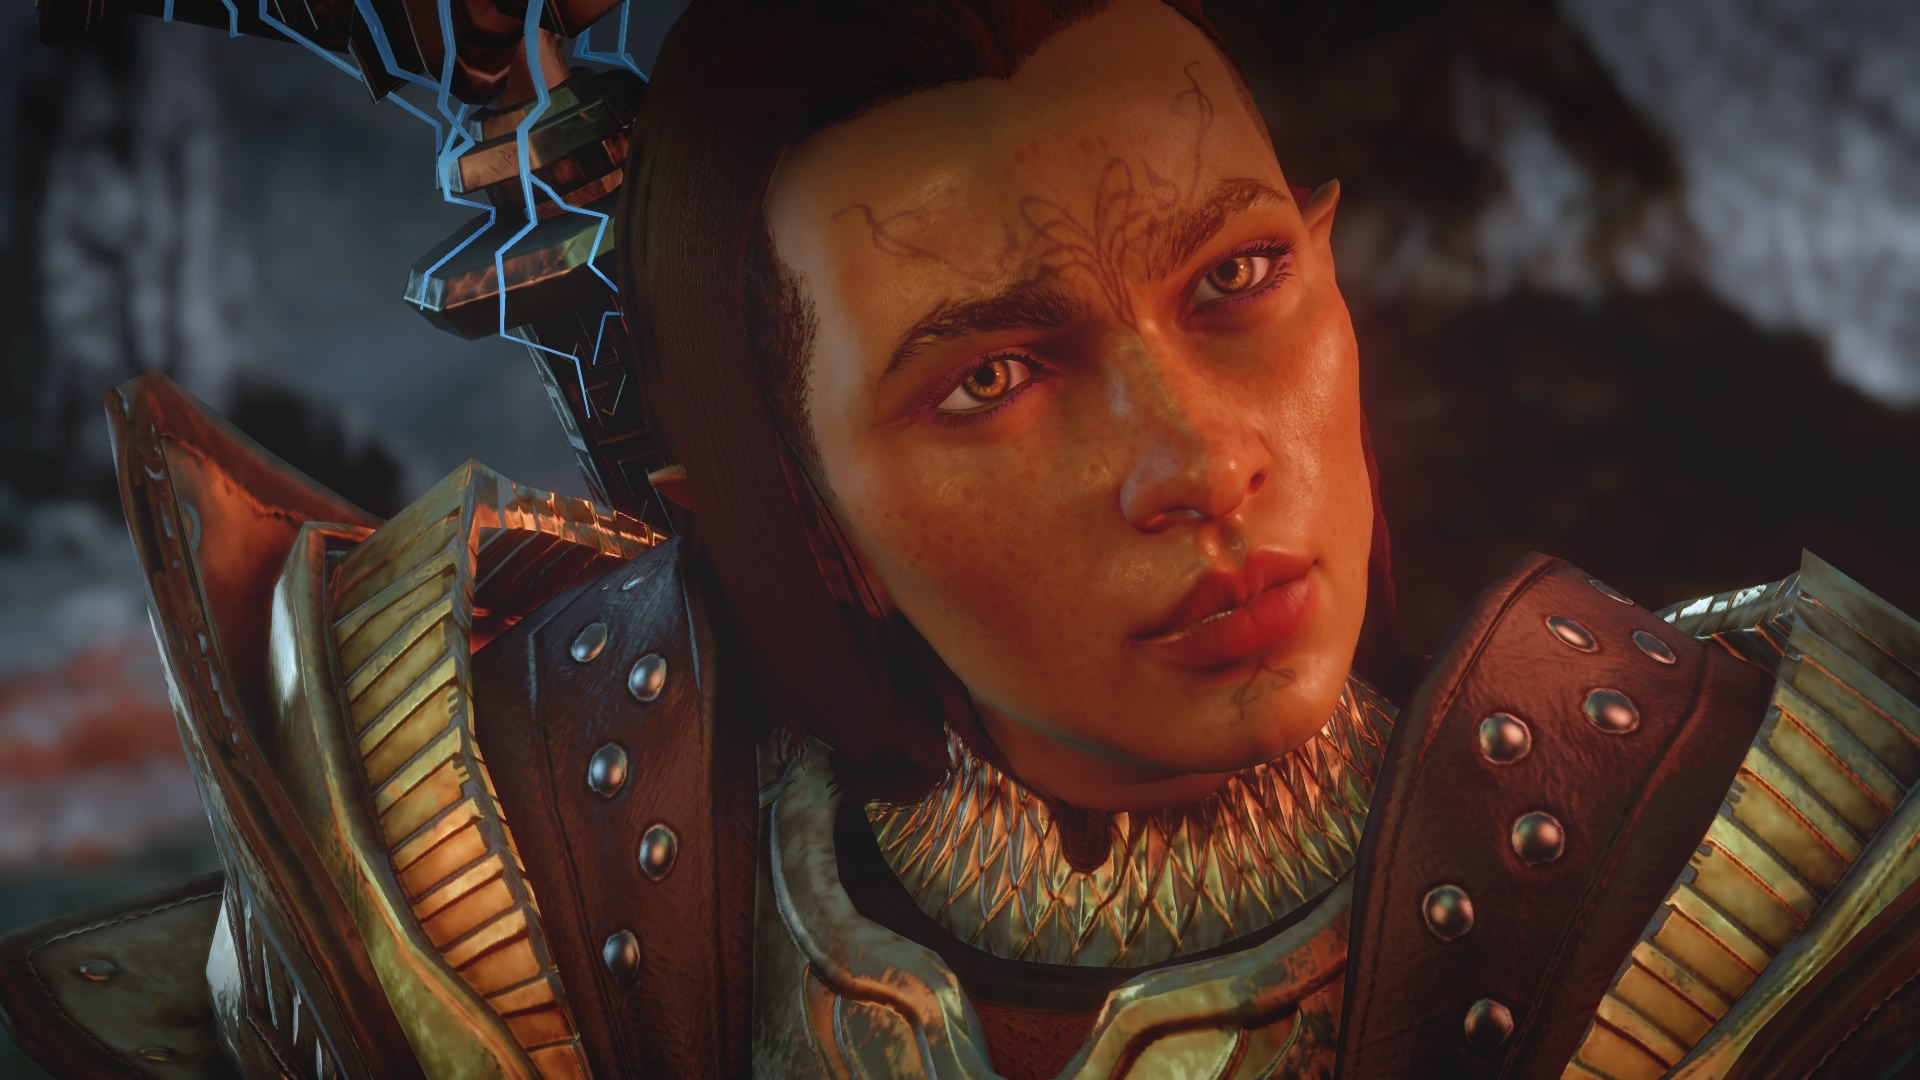 The character I made in the game's character creator. Her name is Serani Lavellan. She's the avatar on my Twitter.